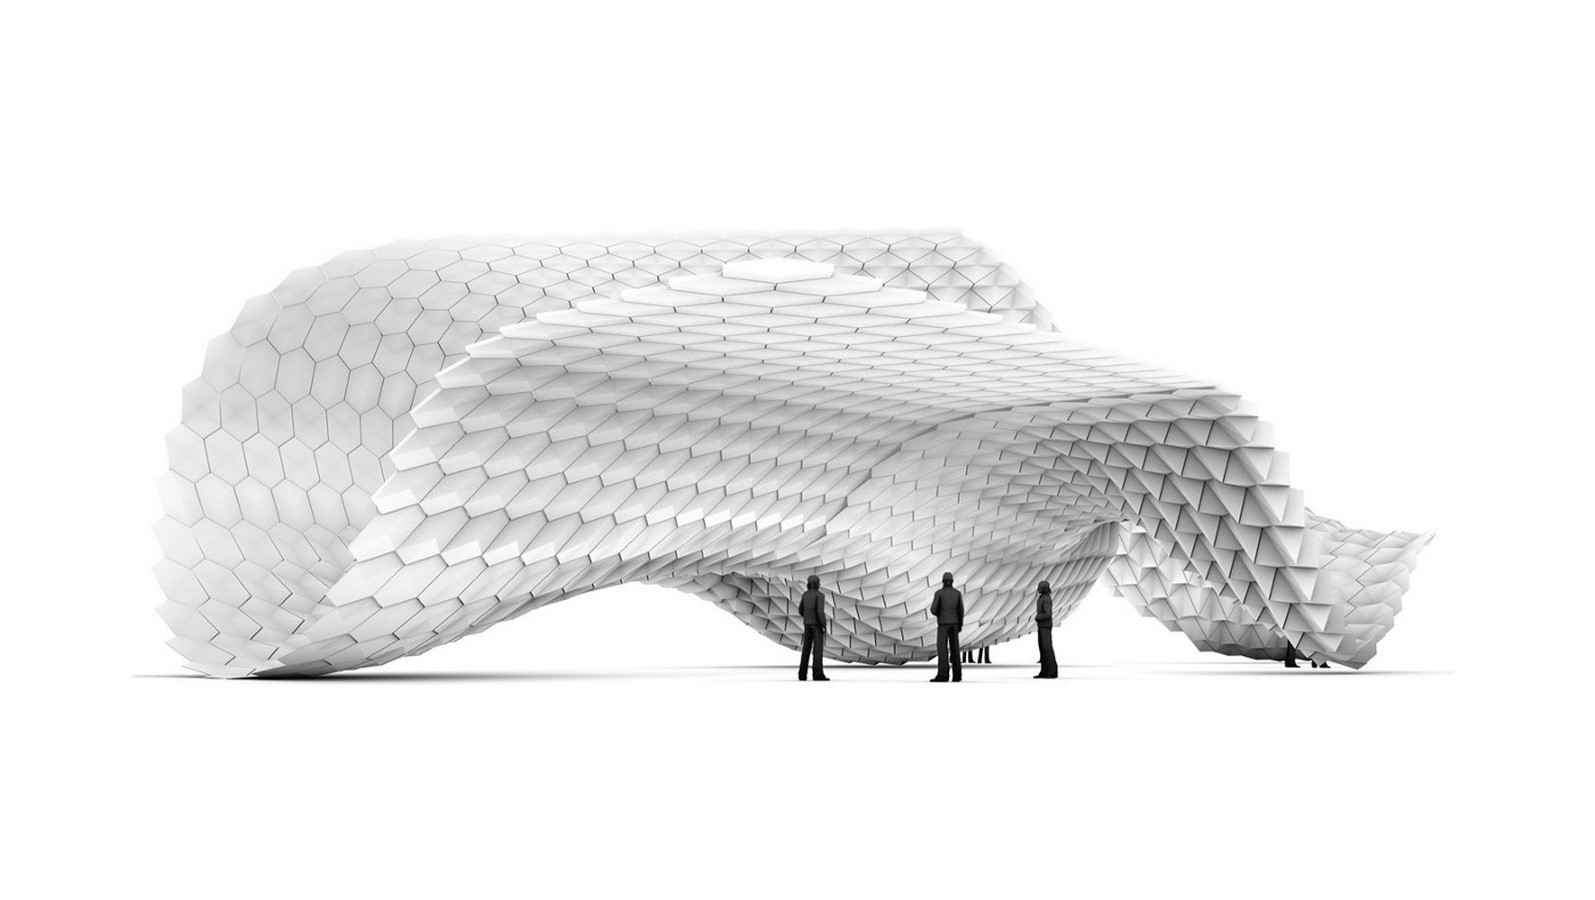 Emerging Technology Trends that will help shape Future of Architecture - Sheet4